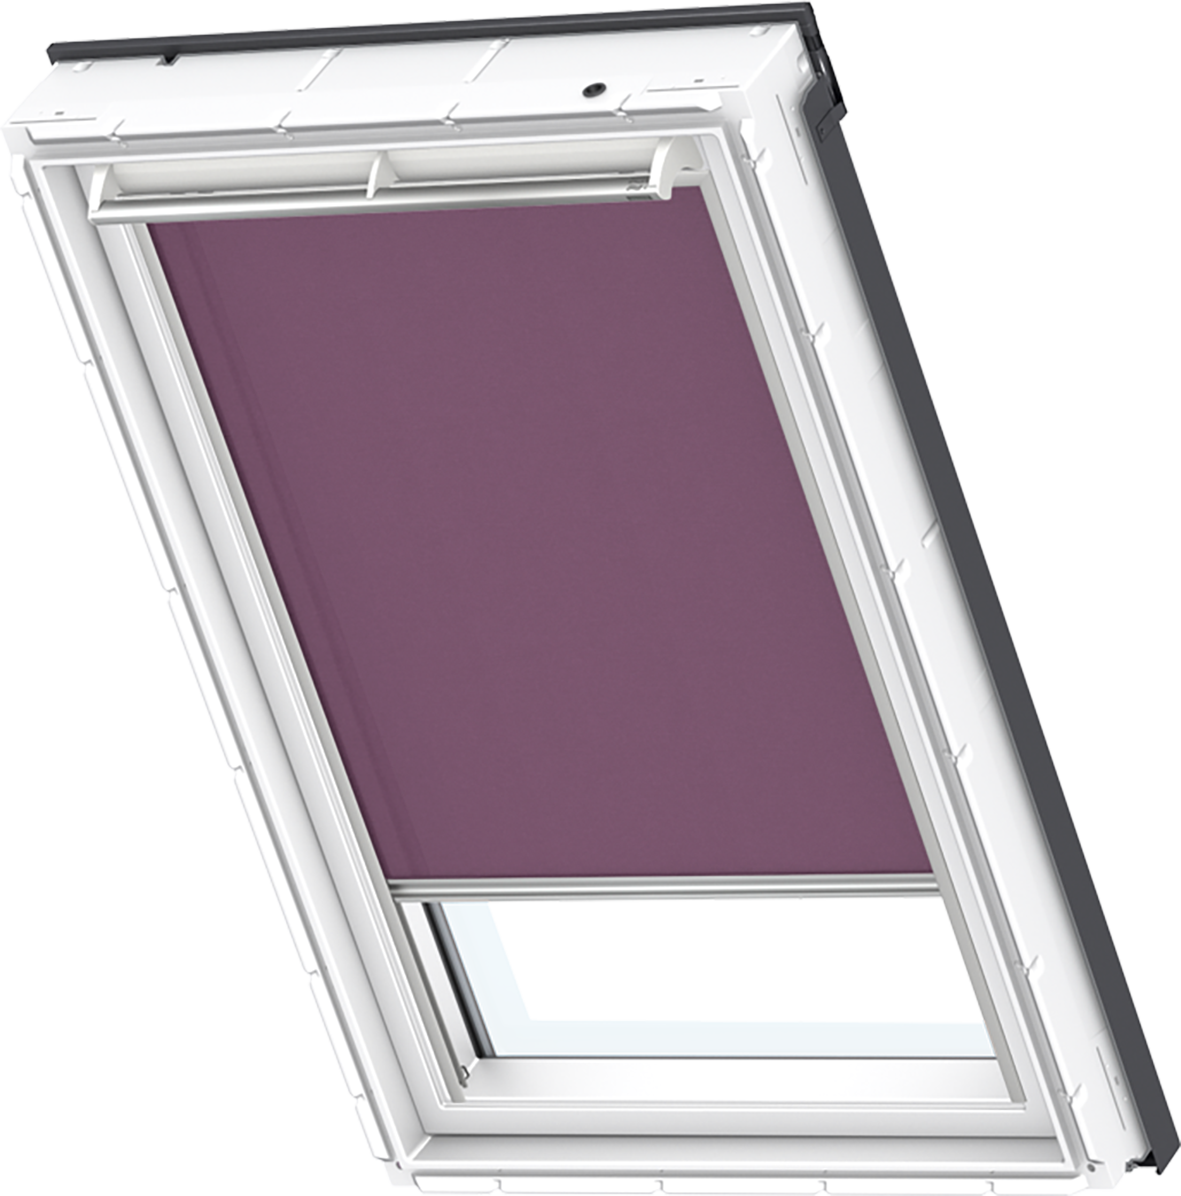 Dachfenster rollo braun schwarz violett original velux ggl for Dimension velux gfl 1